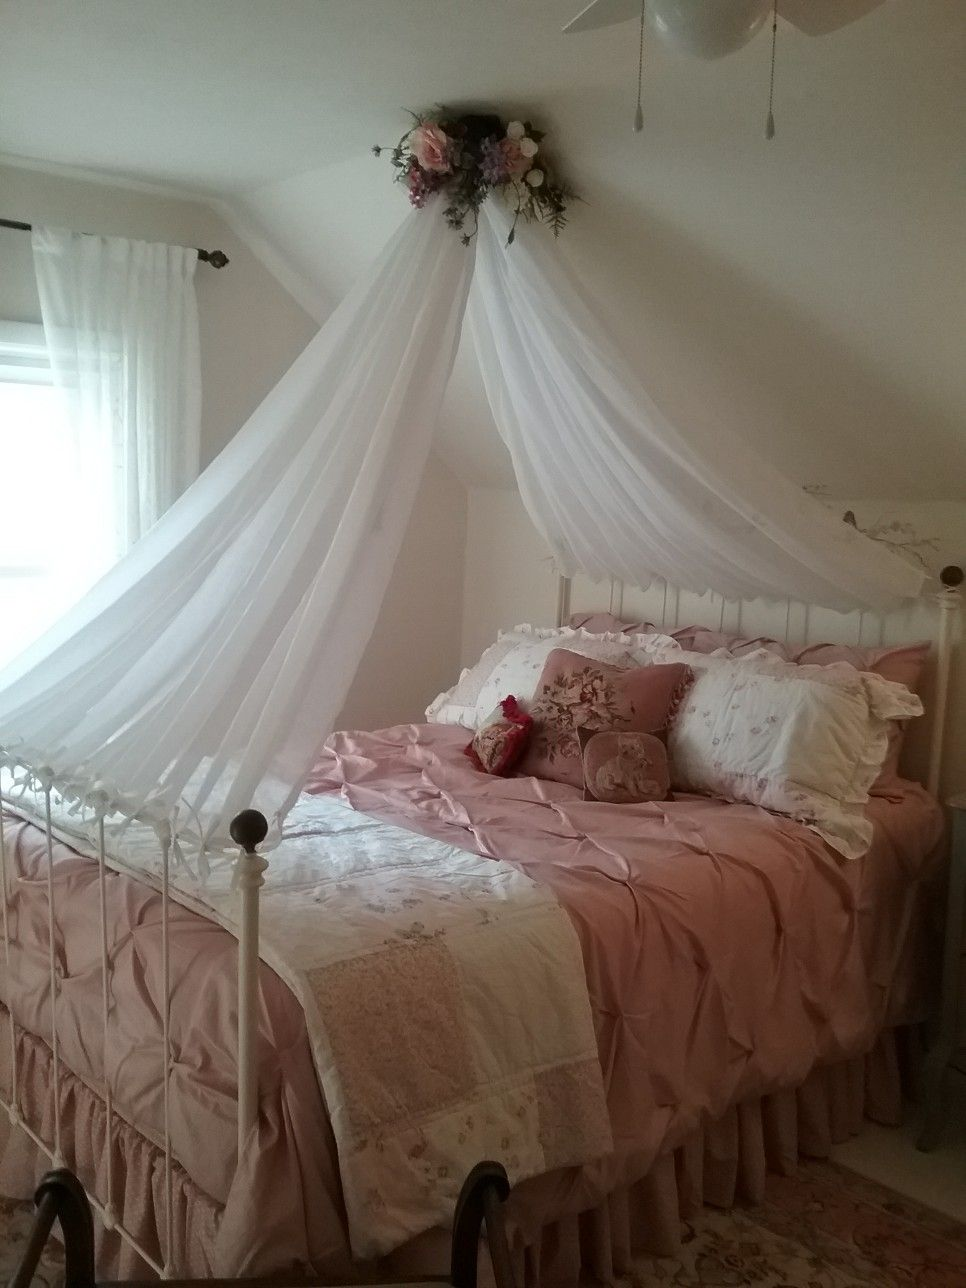 25+ Bed tied ideas